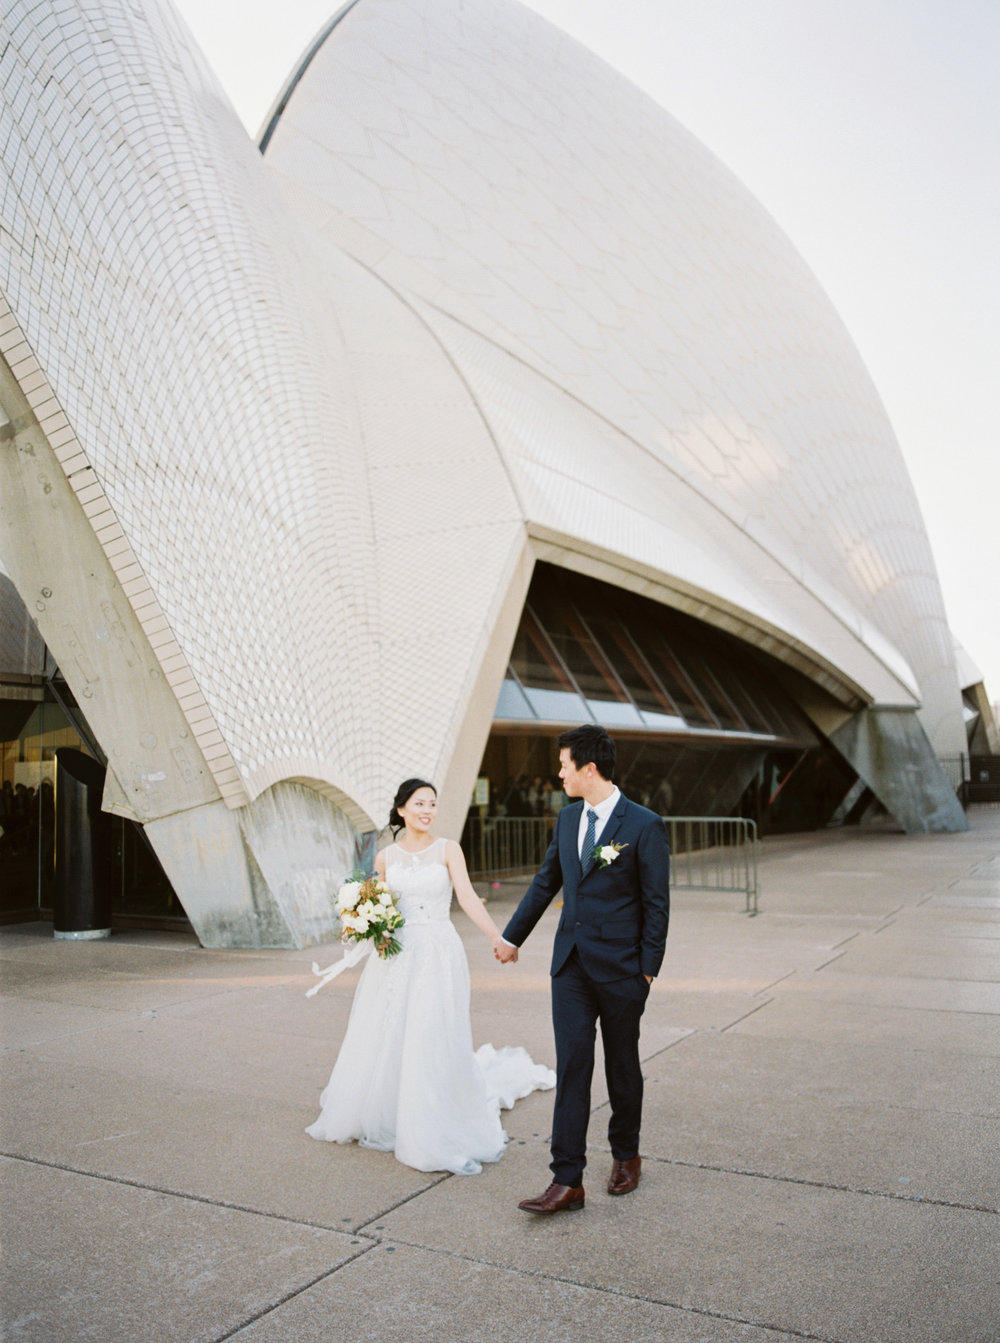 00048- Australia Sydney Wedding Photographer Sheri McMahon.jpg